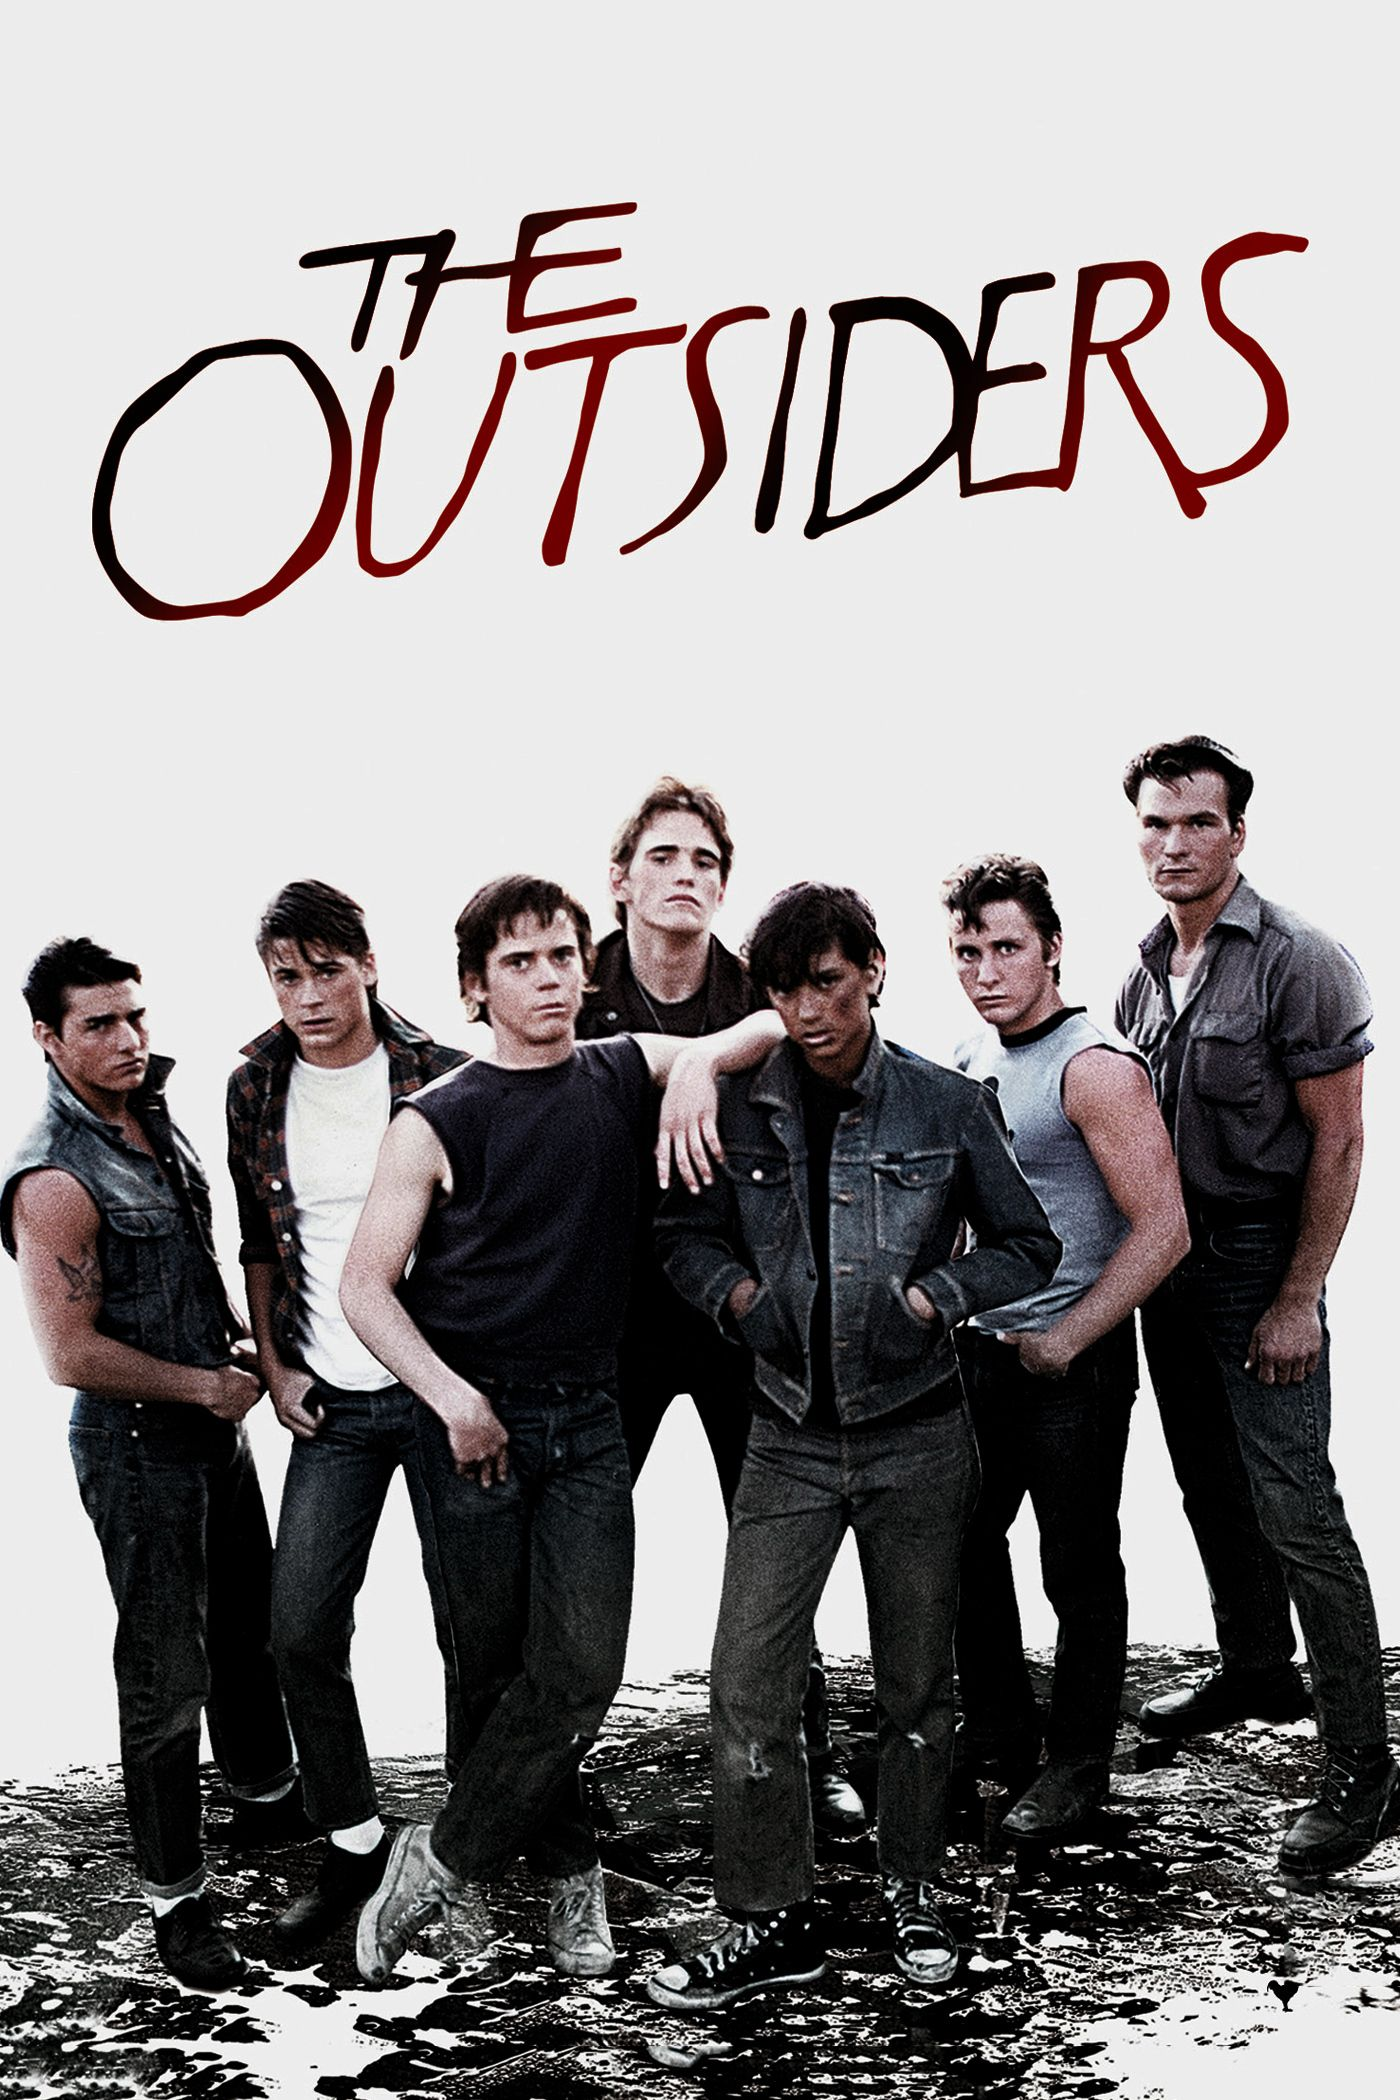 Download The Outsiders Wallpaper Gallery   Outsiders Movie 1400x2100